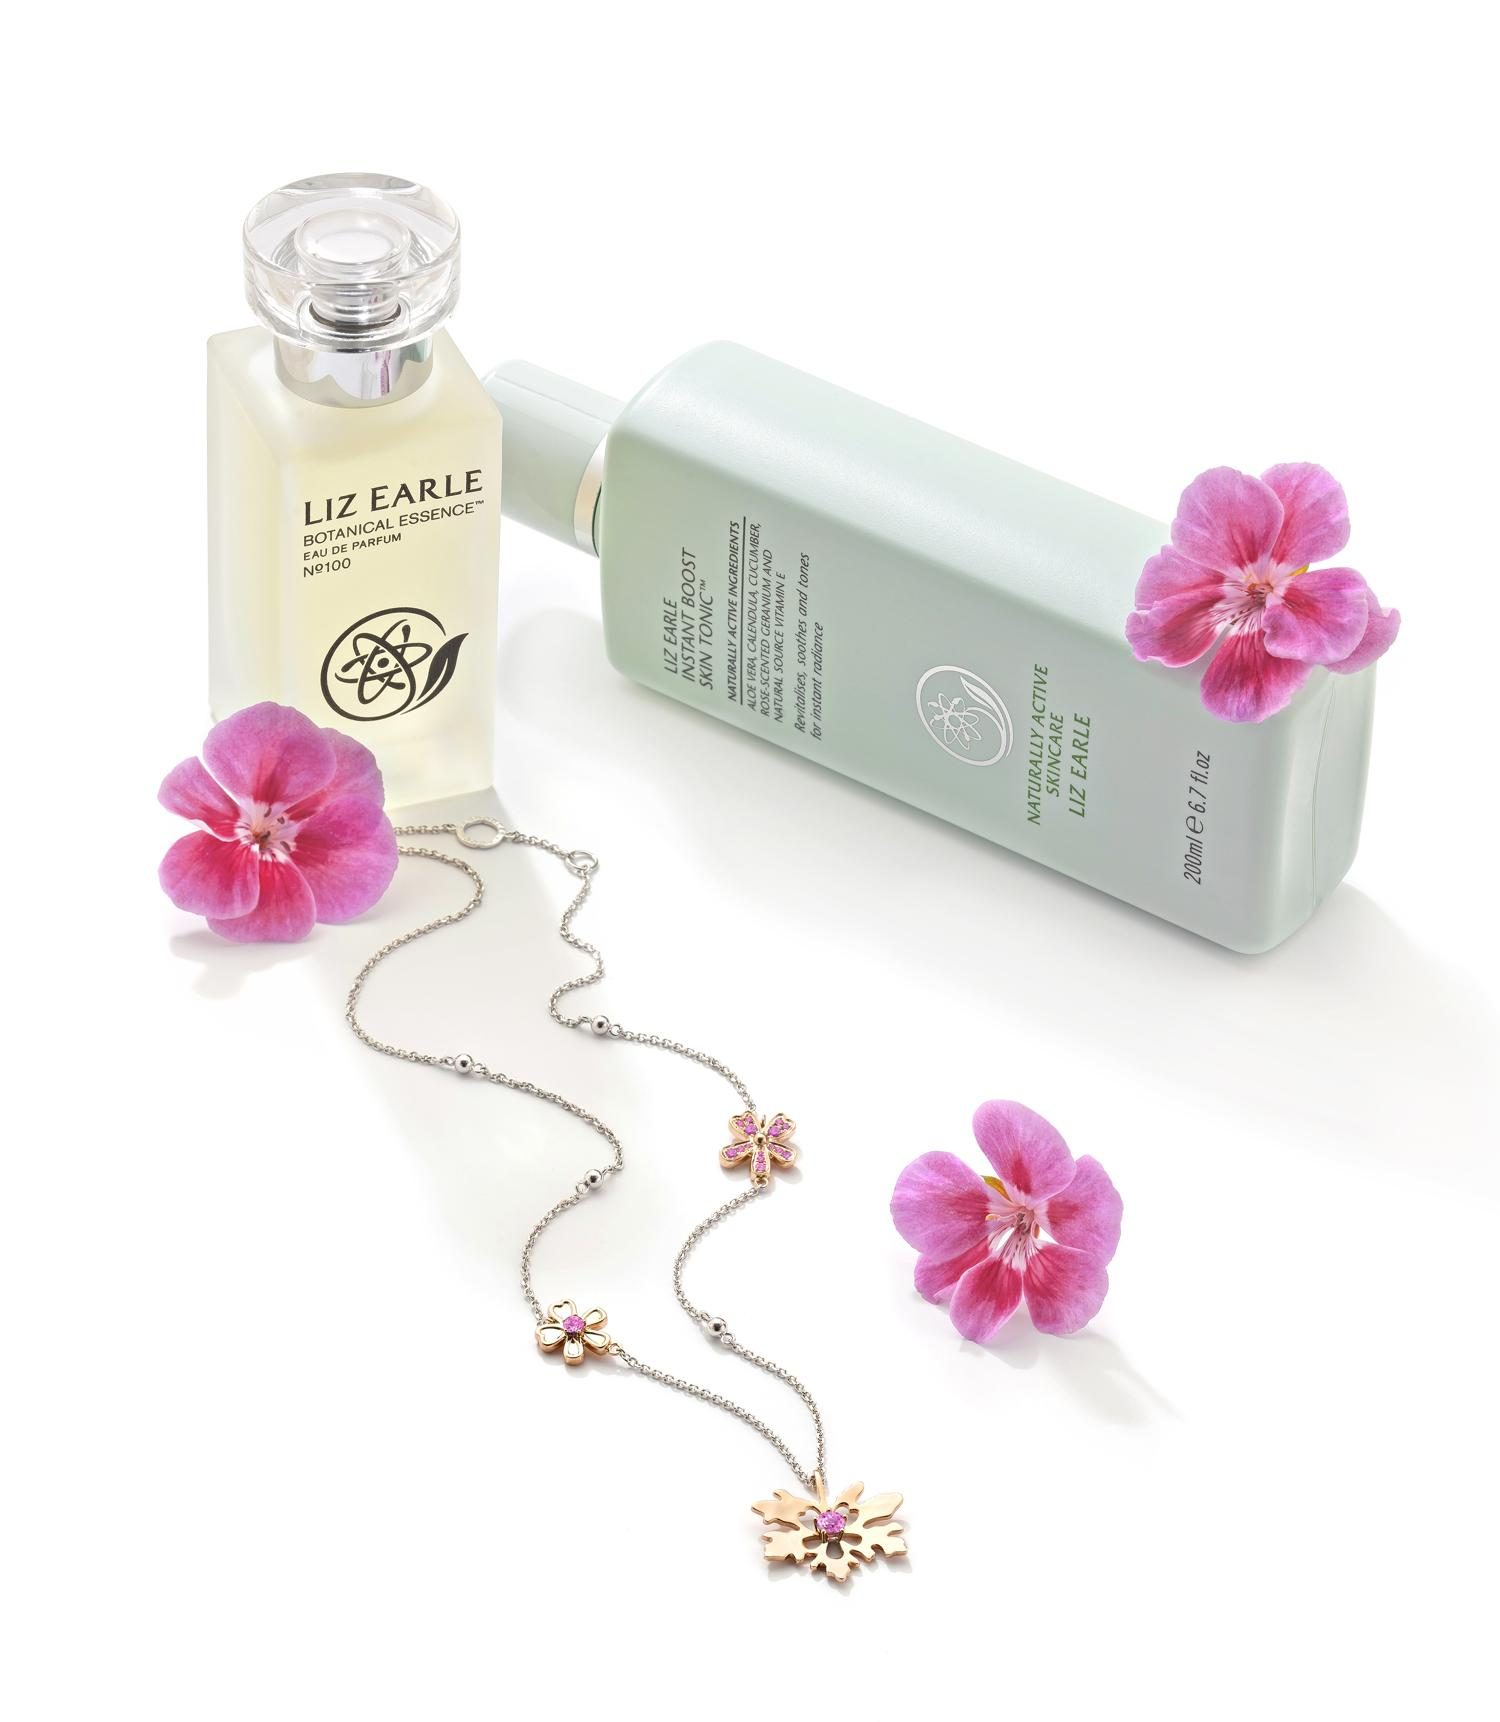 Liz Earle teams up with Boodles to launch necklace http://t.co/avsBrVrWcU @lizearle @Boodles @TheCommsStore http://t.co/6XHZhujYHP